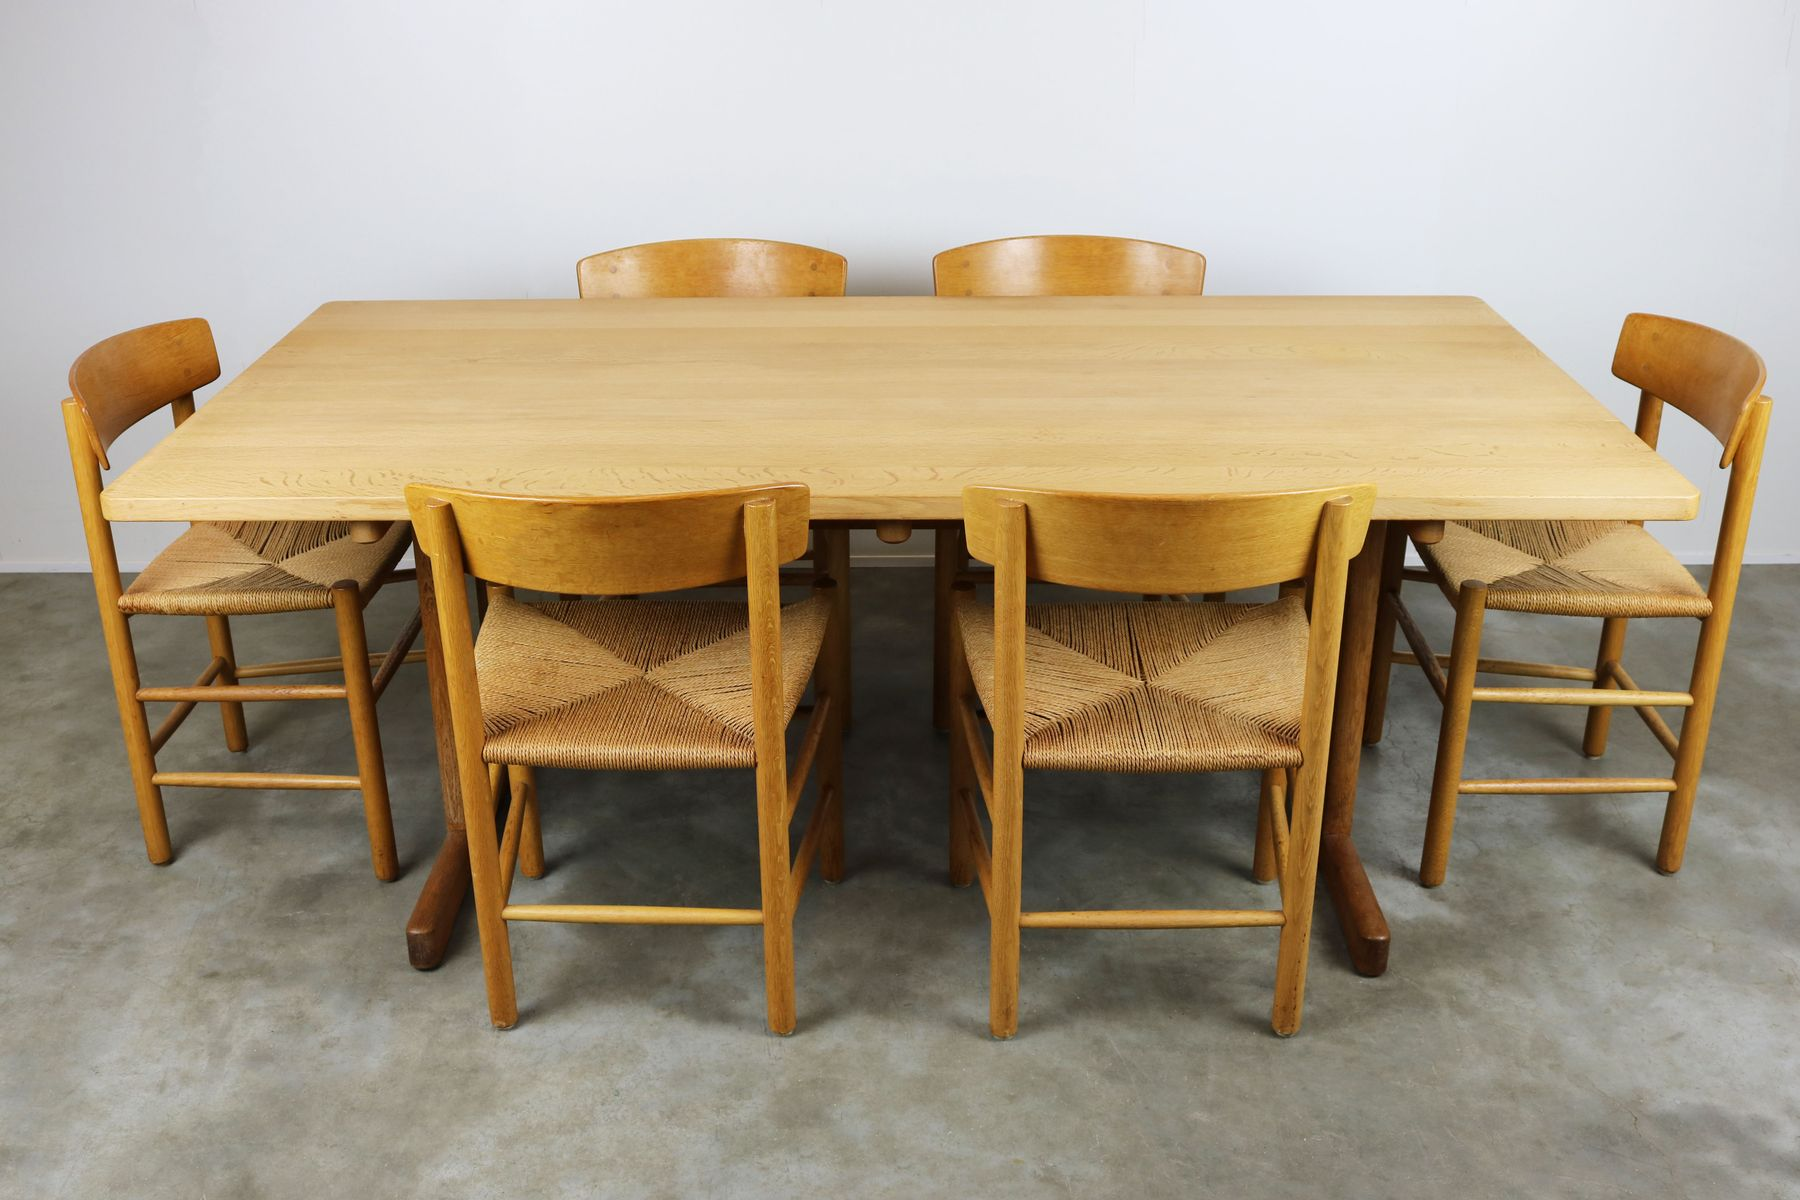 Danish Shaker Dining Room Set J39 Chairs & 6286 Table By B¸rge